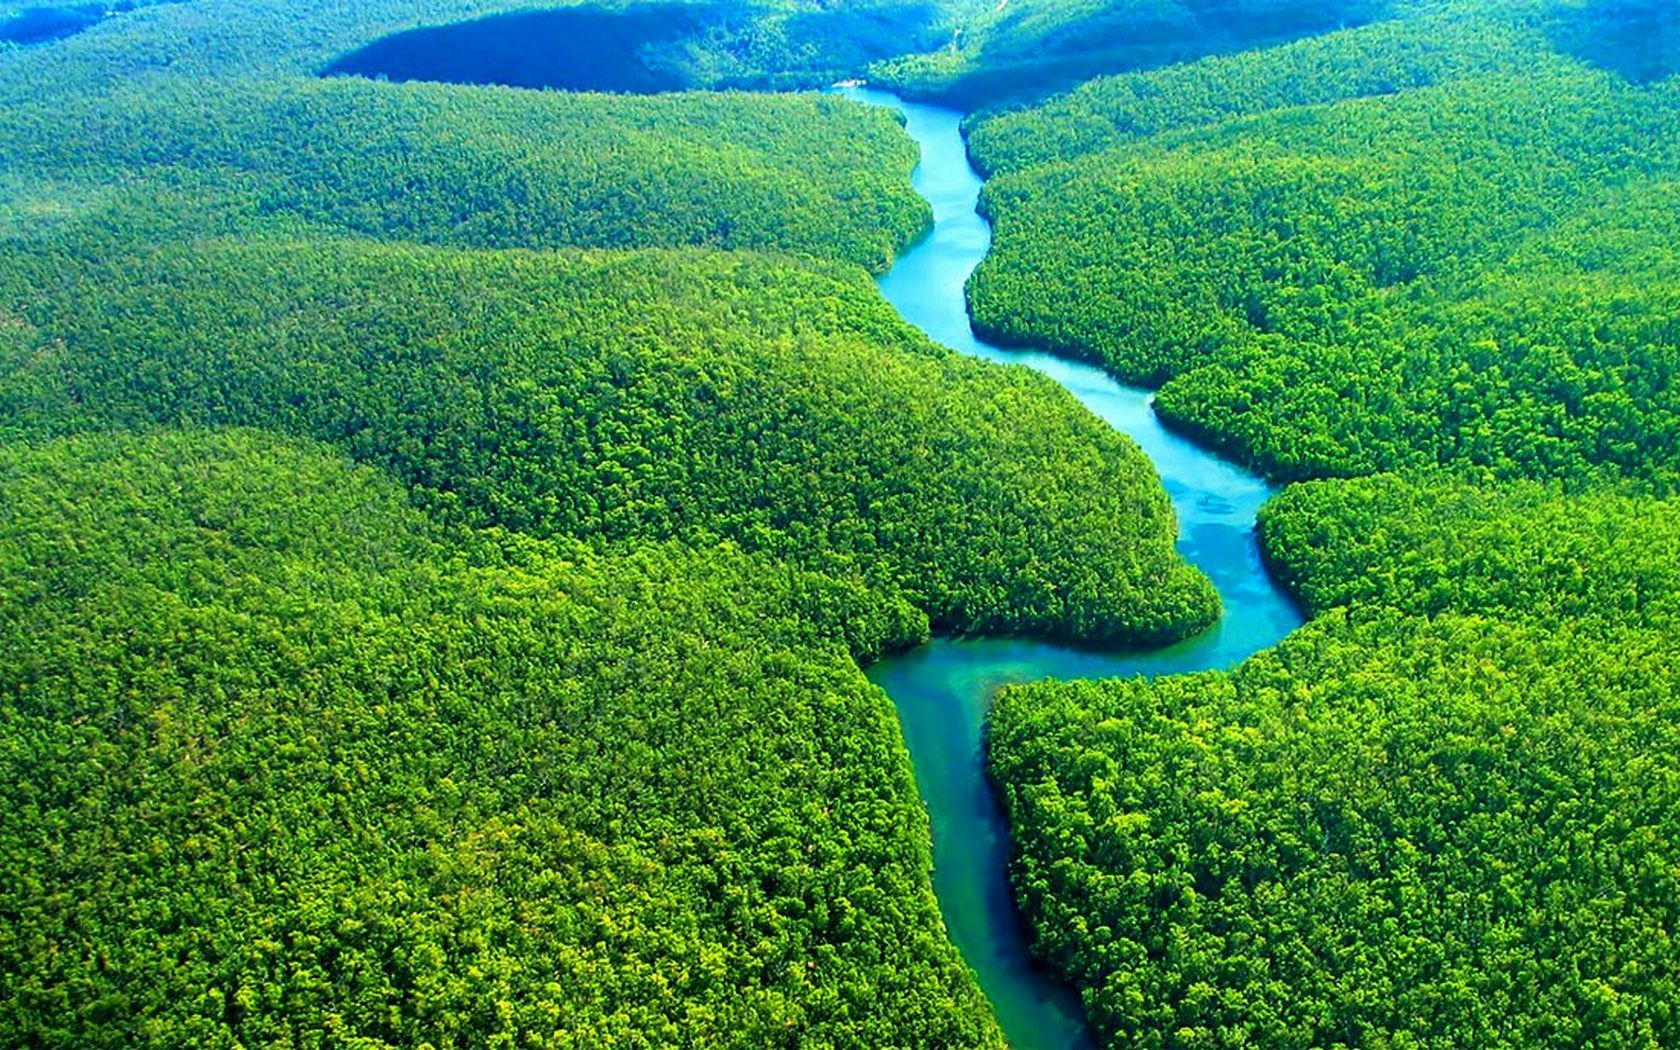 Amazon Rainforest Wallpaper For Desktop And Mobile In High Resolution Download We Have Best Collection Of Forest Hd Widescreen Resolutions